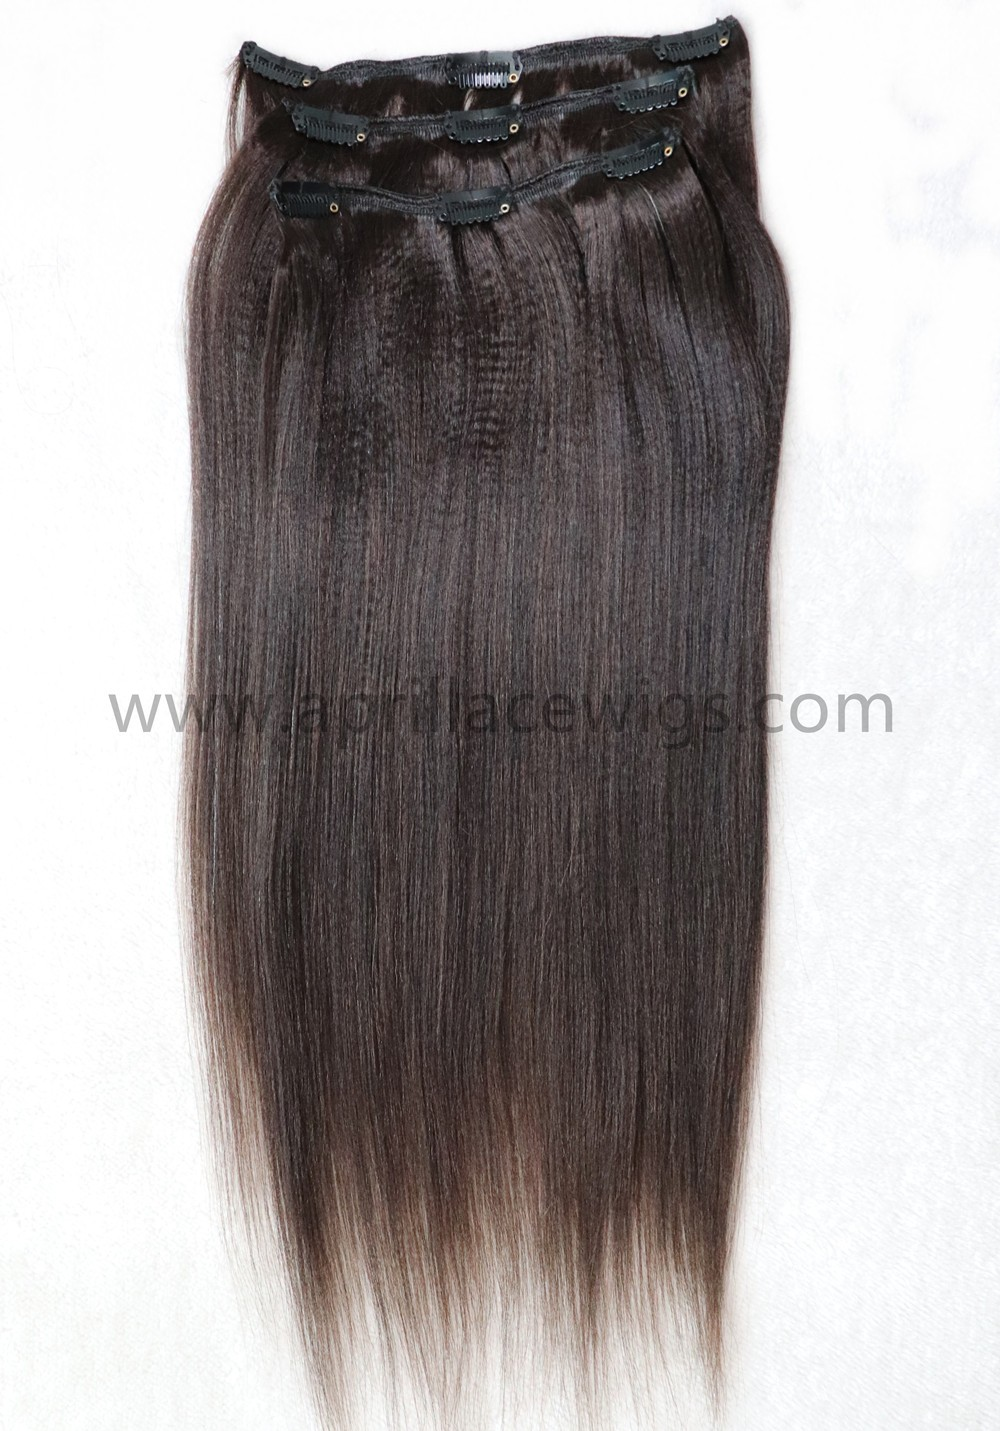 clip in extensions, light yaki hair, yaki cilp-ins extension